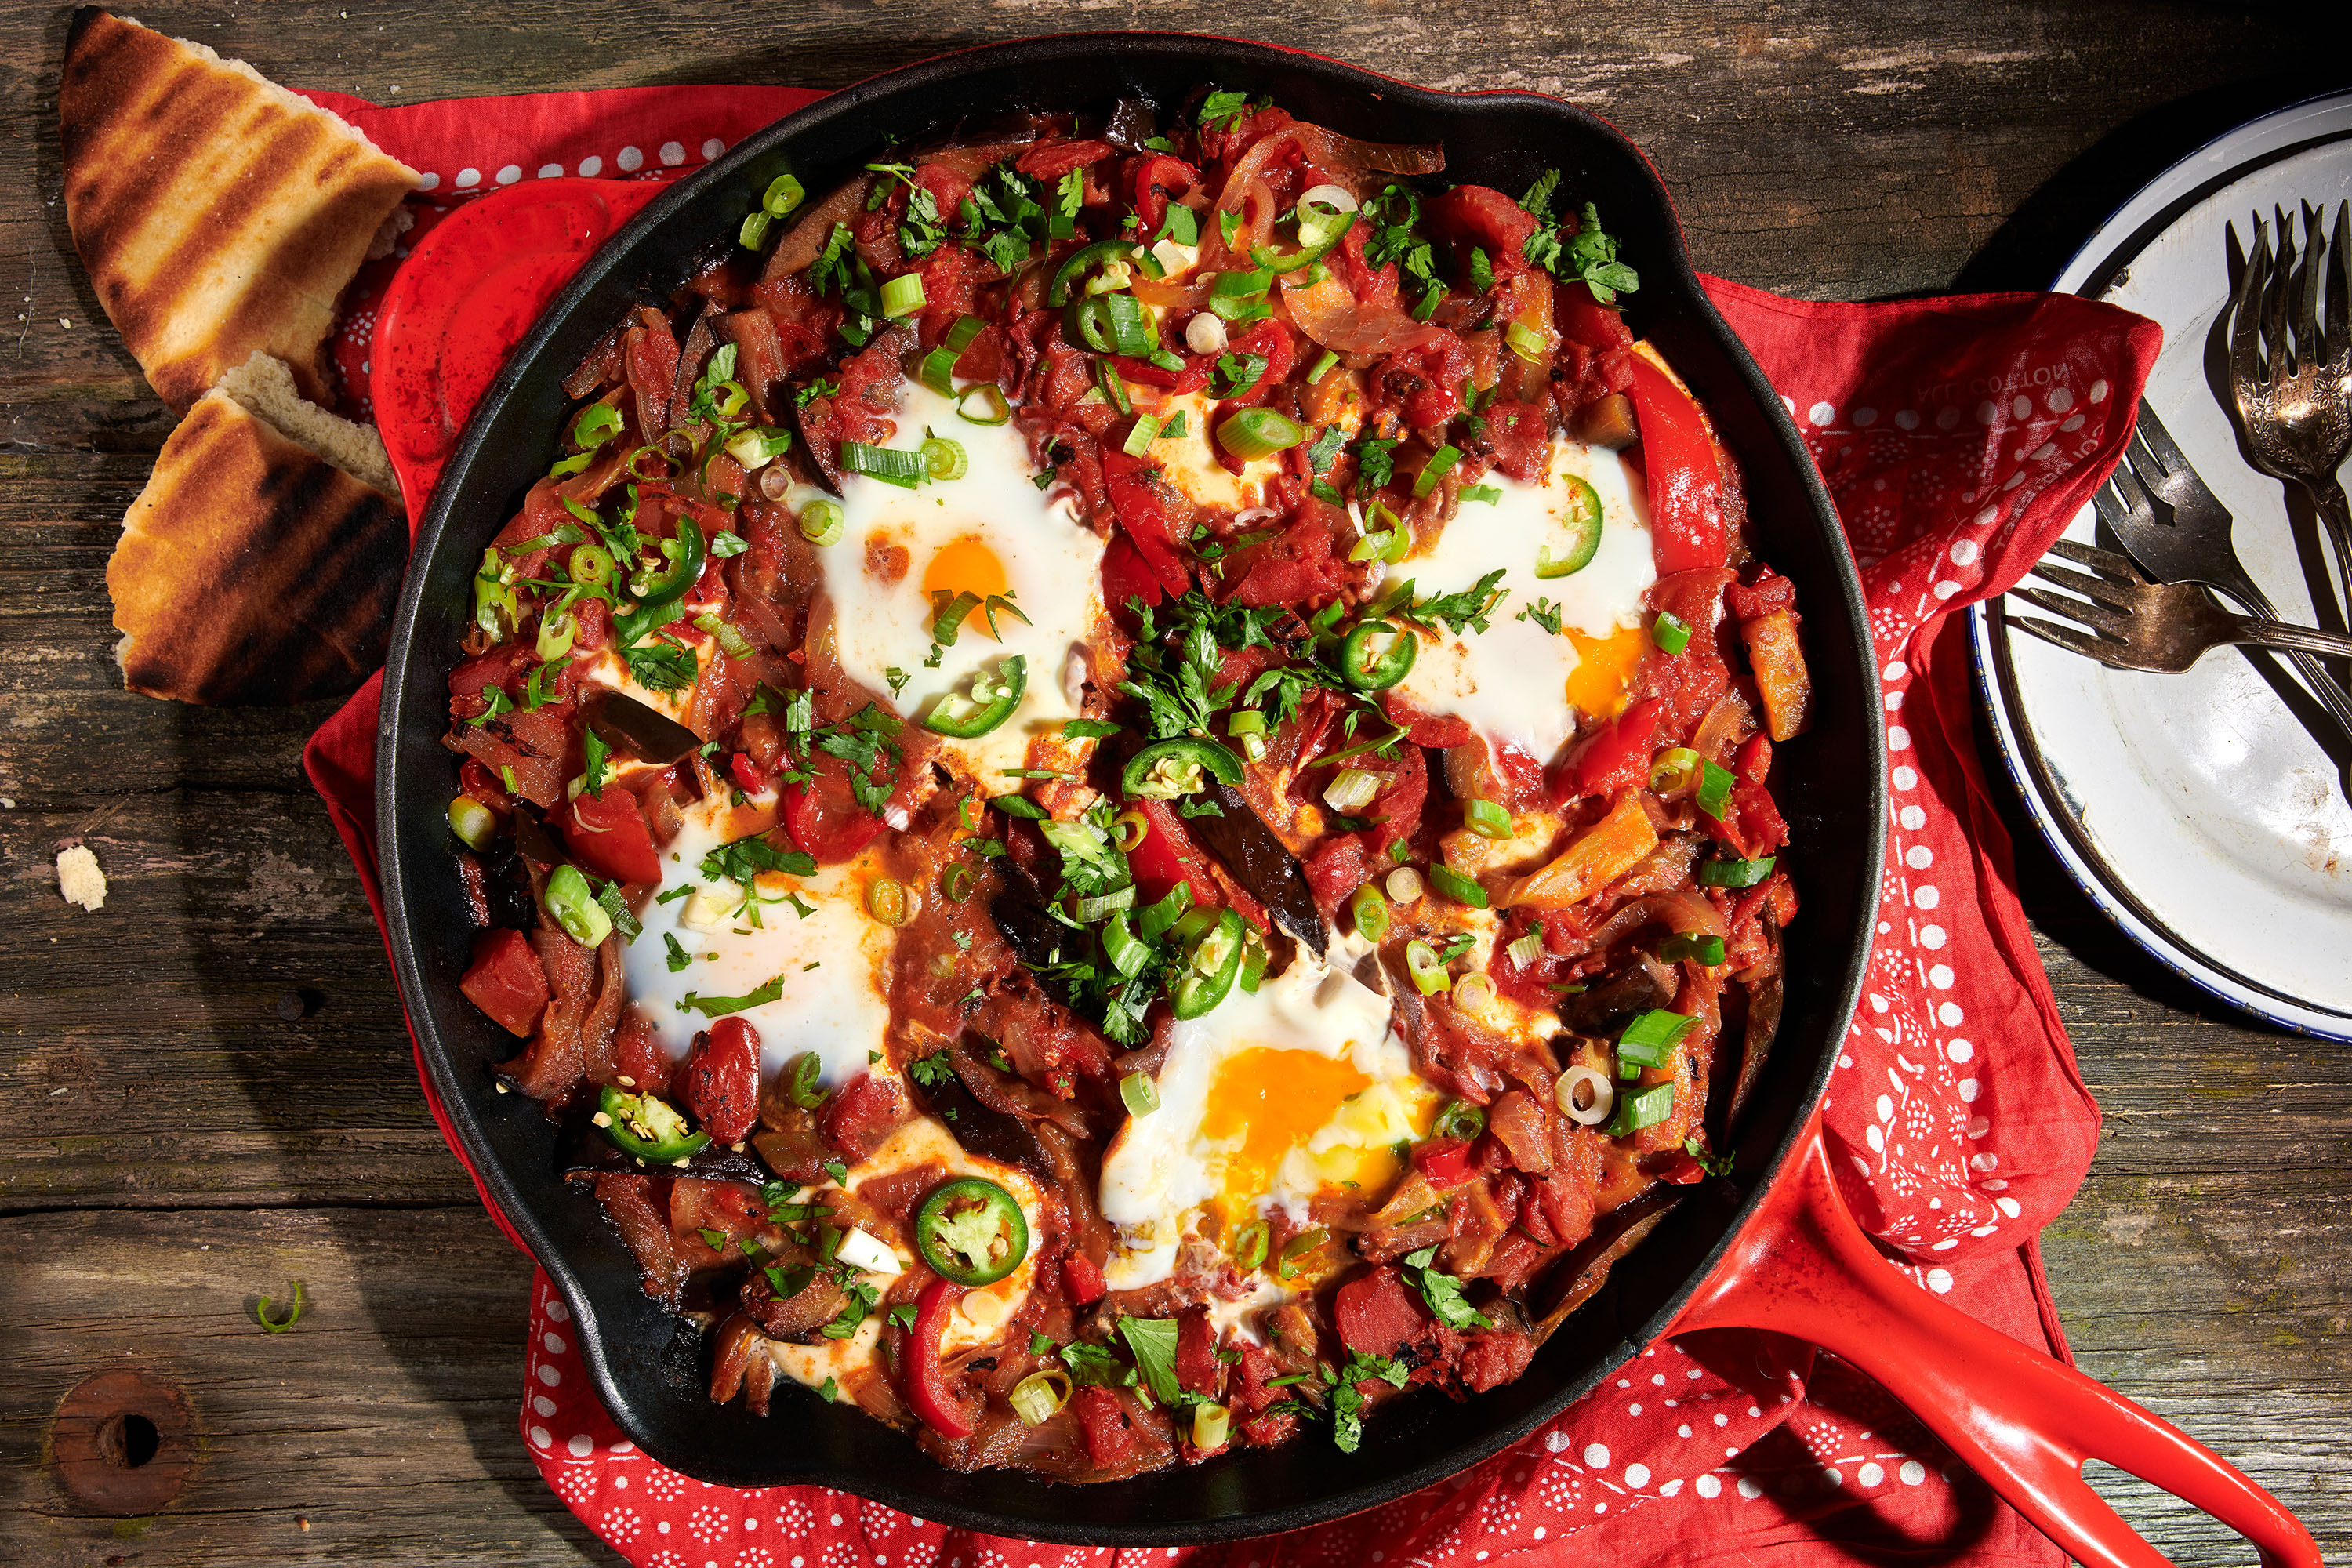 Shakshuka in a red cast-iron pan seen from above on a picnic table top, with a red bandana underneath.